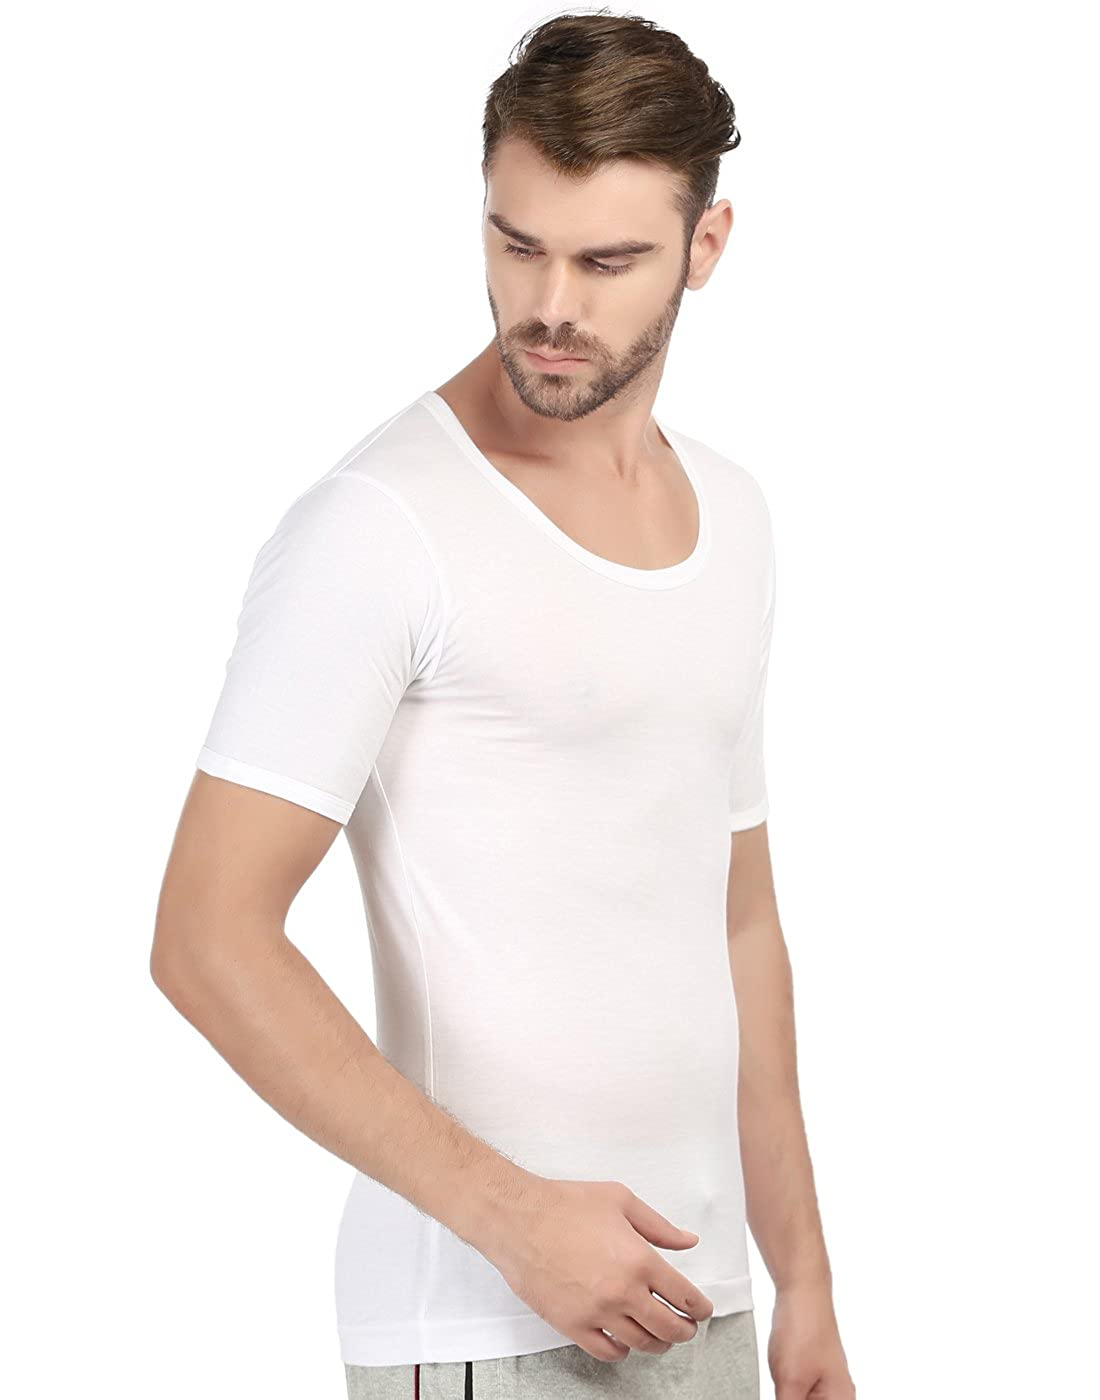 353678c0c41f82 Macroman M - Series Men's 2-Pack Cotton Round Neck with Sleeves Tank Top at  Amazon Men's Clothing store: